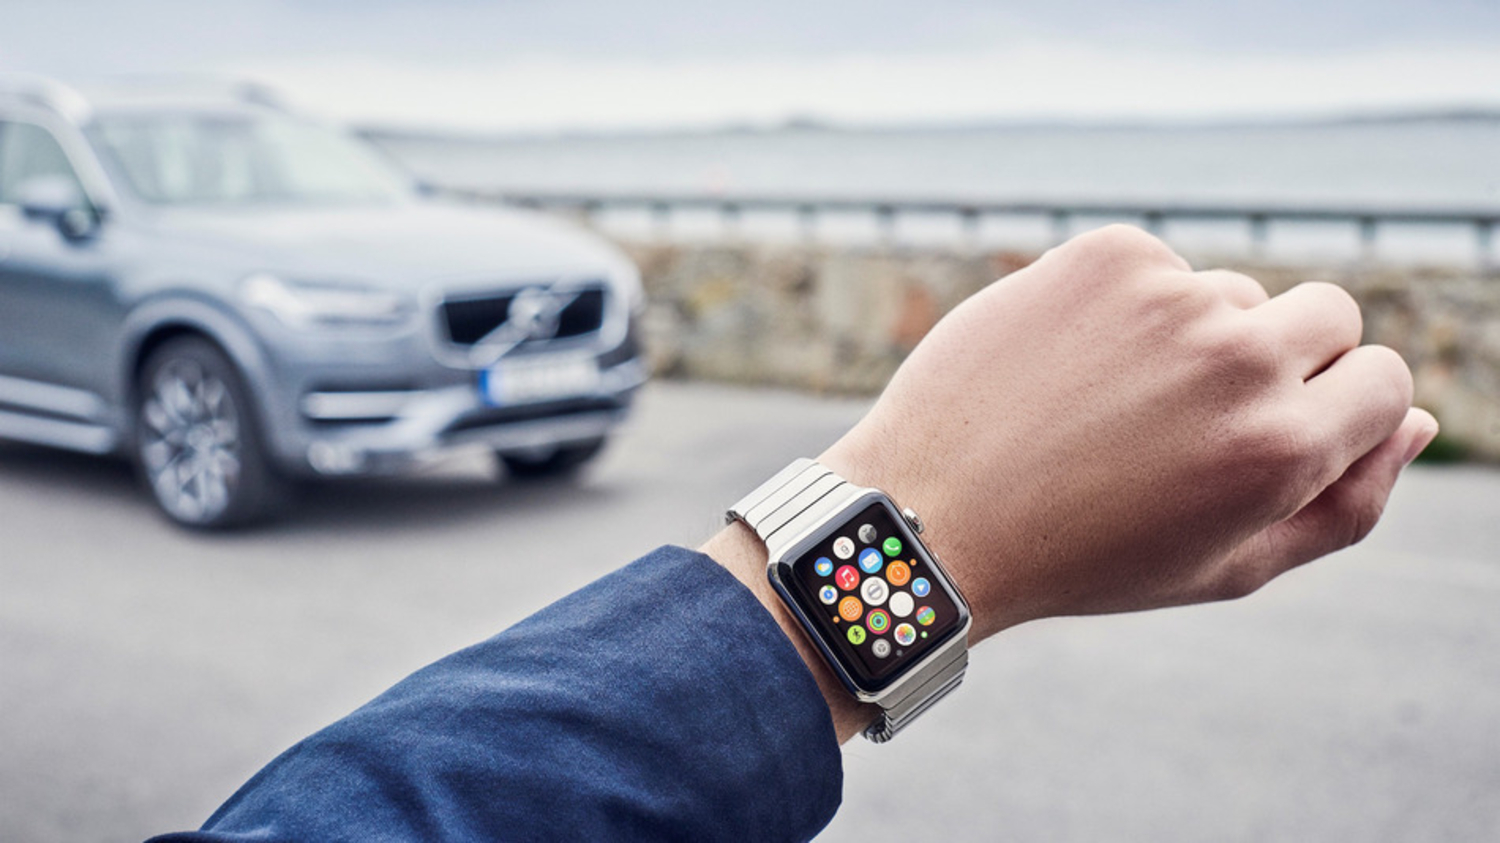 Unlock Cars With... Your Watch?